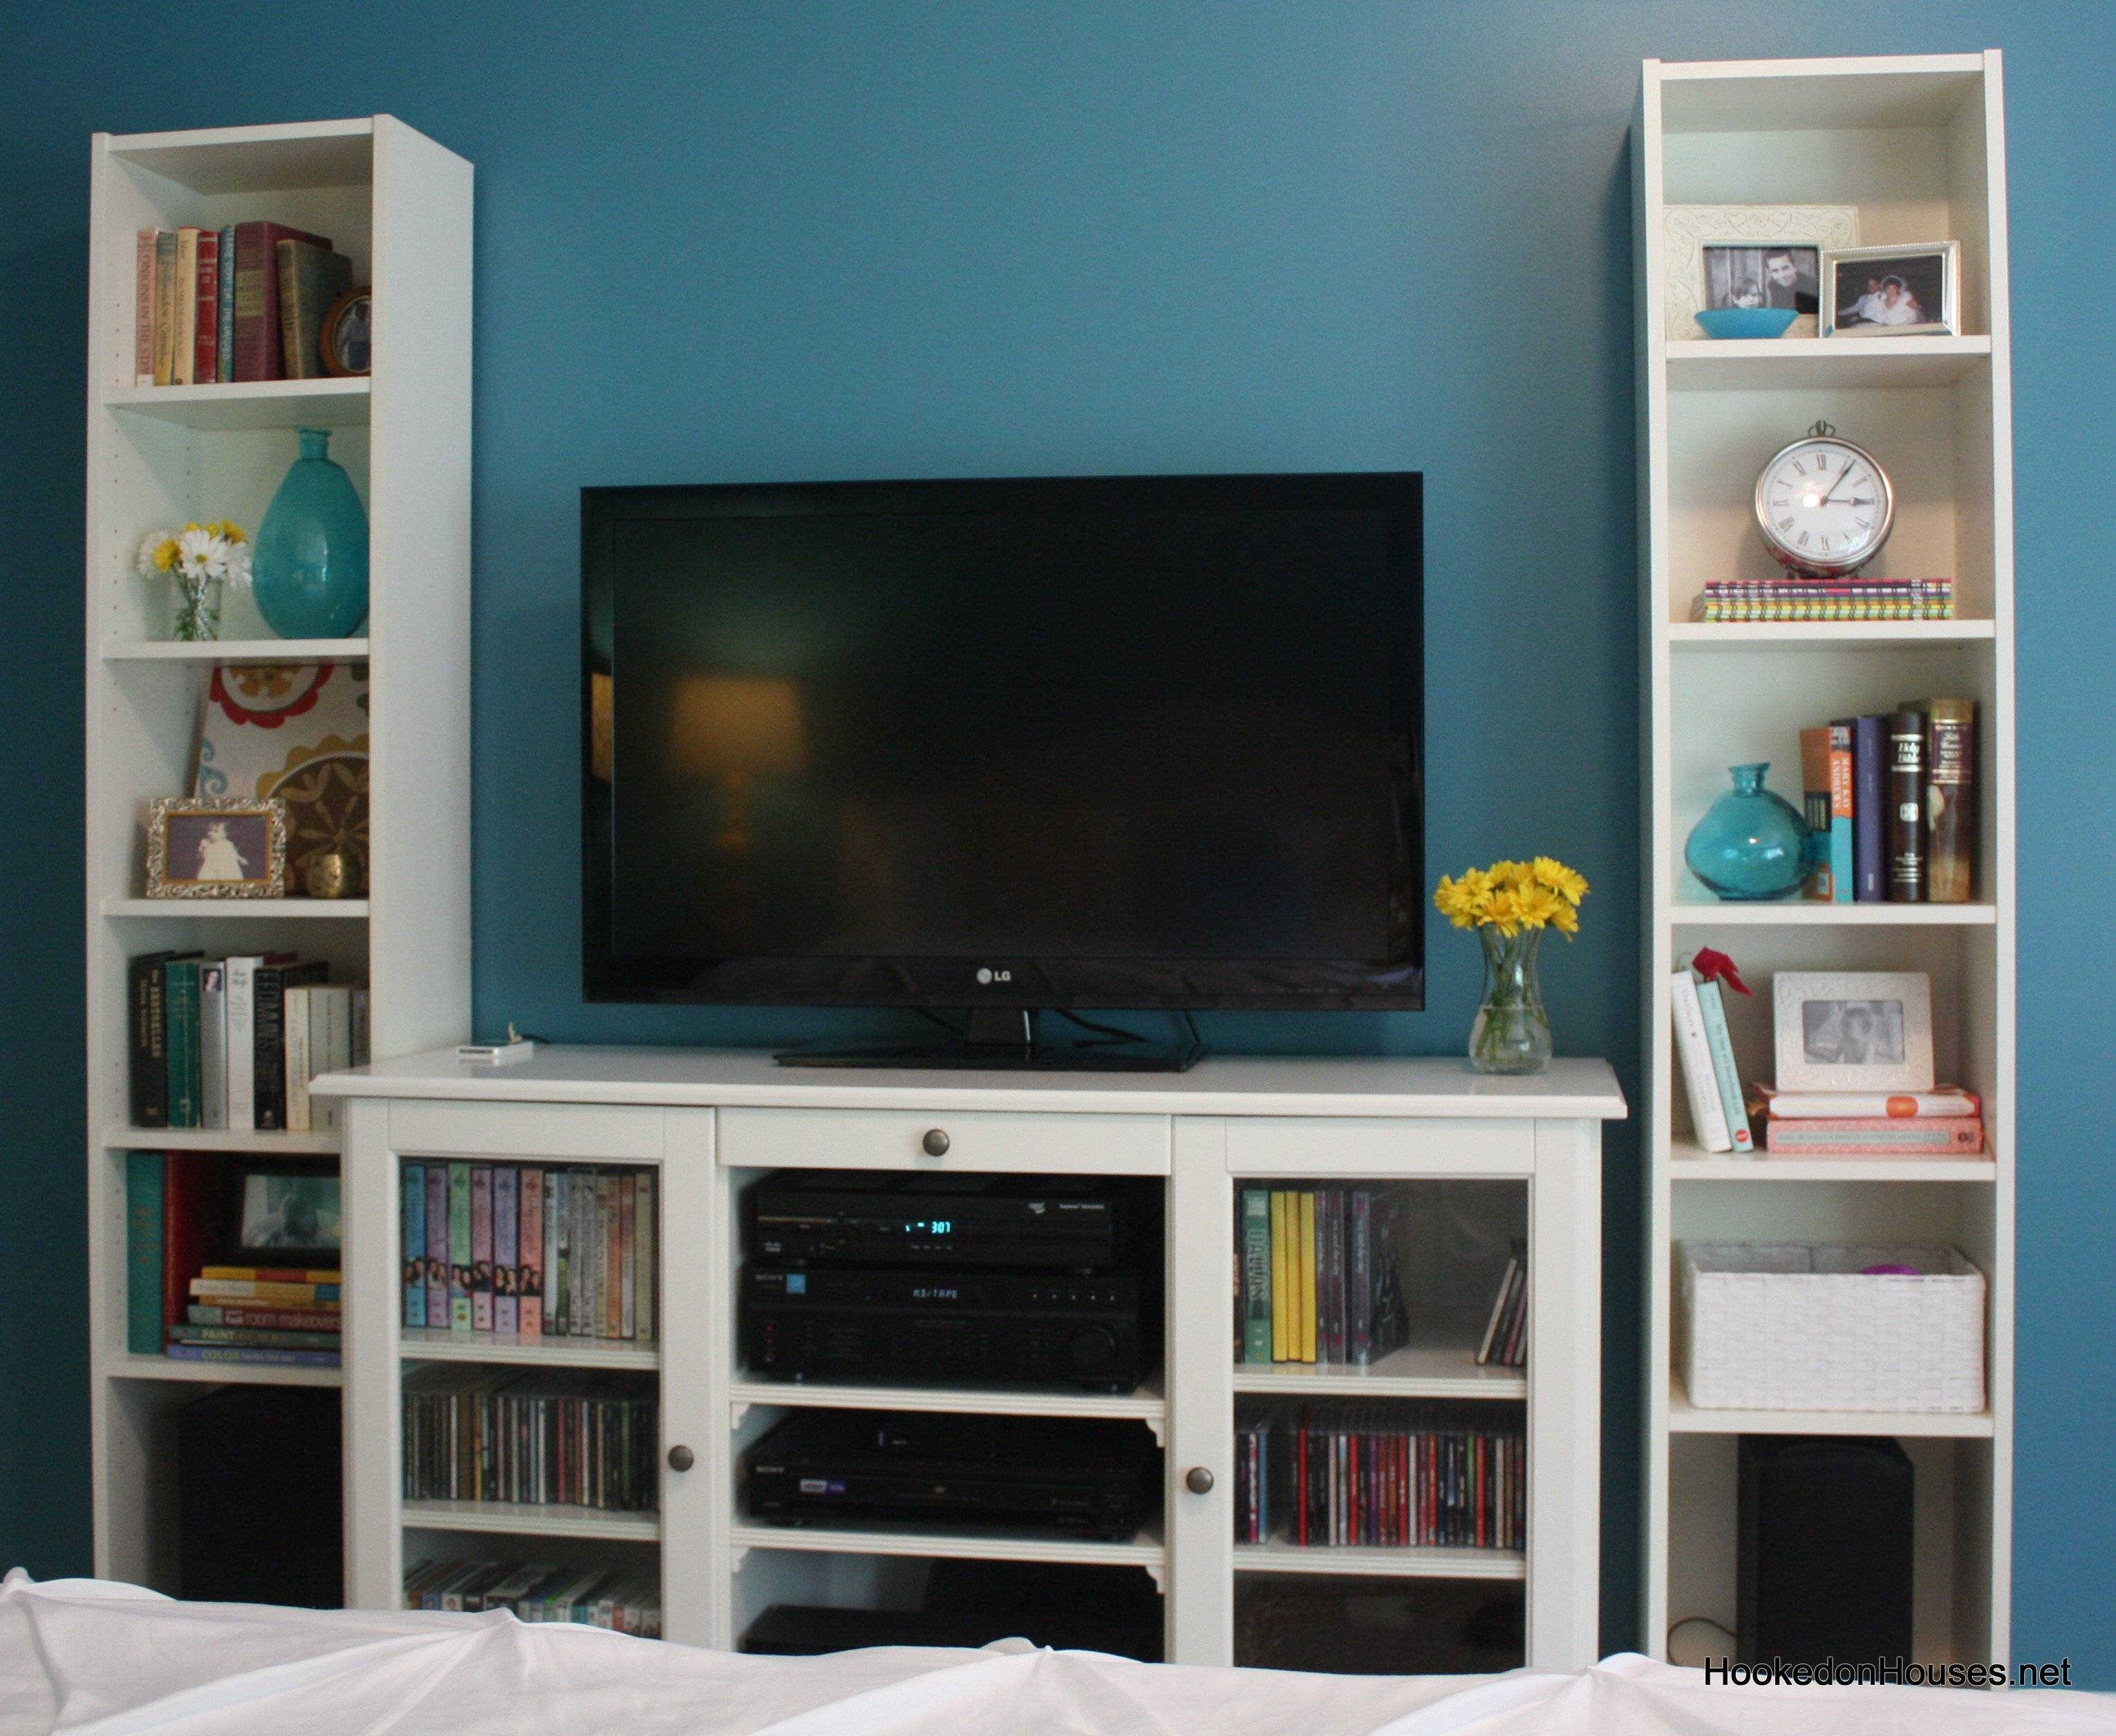 Tv Cabinet And Bookshelves - Hooked On Houses with regard to Bookshelf Tv Stands Combo (Image 5 of 15)